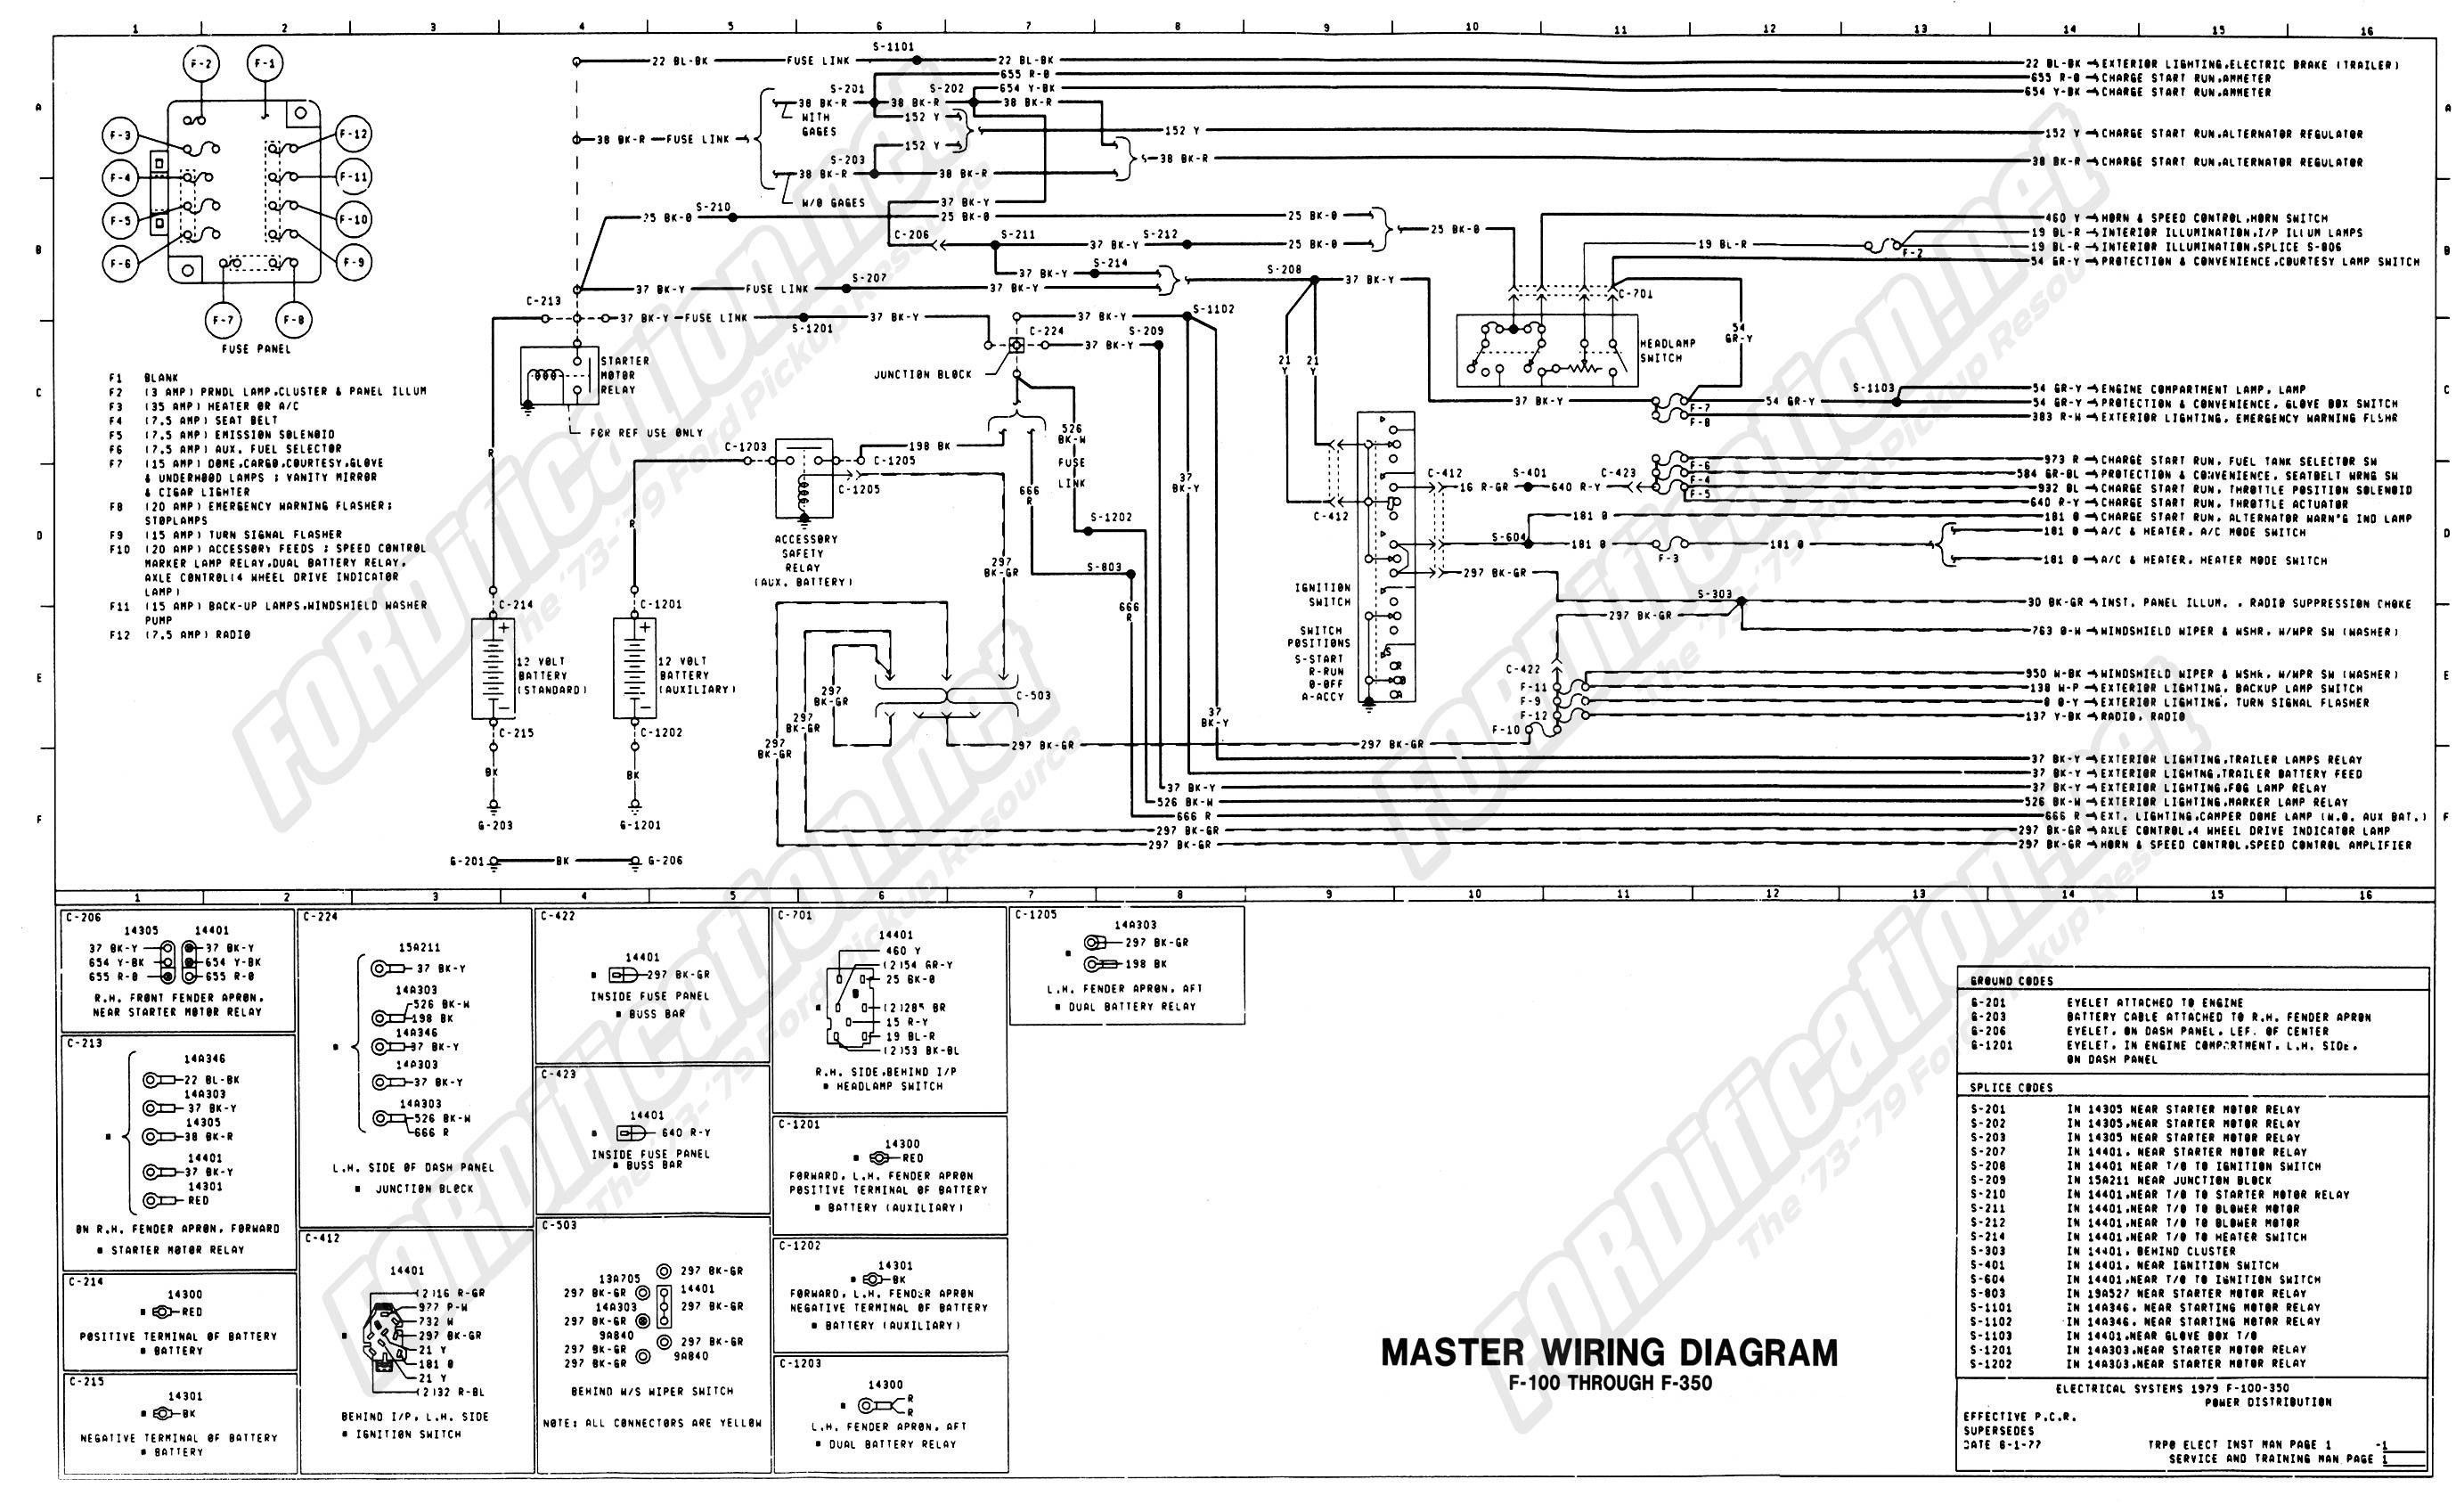 Ford F150 Wiring Diagrams in 2021 | Sterling trucks, Diagram, Trailer wiring  diagram | Ford F550 Dump Truck Wiring Diagram |  | Pinterest